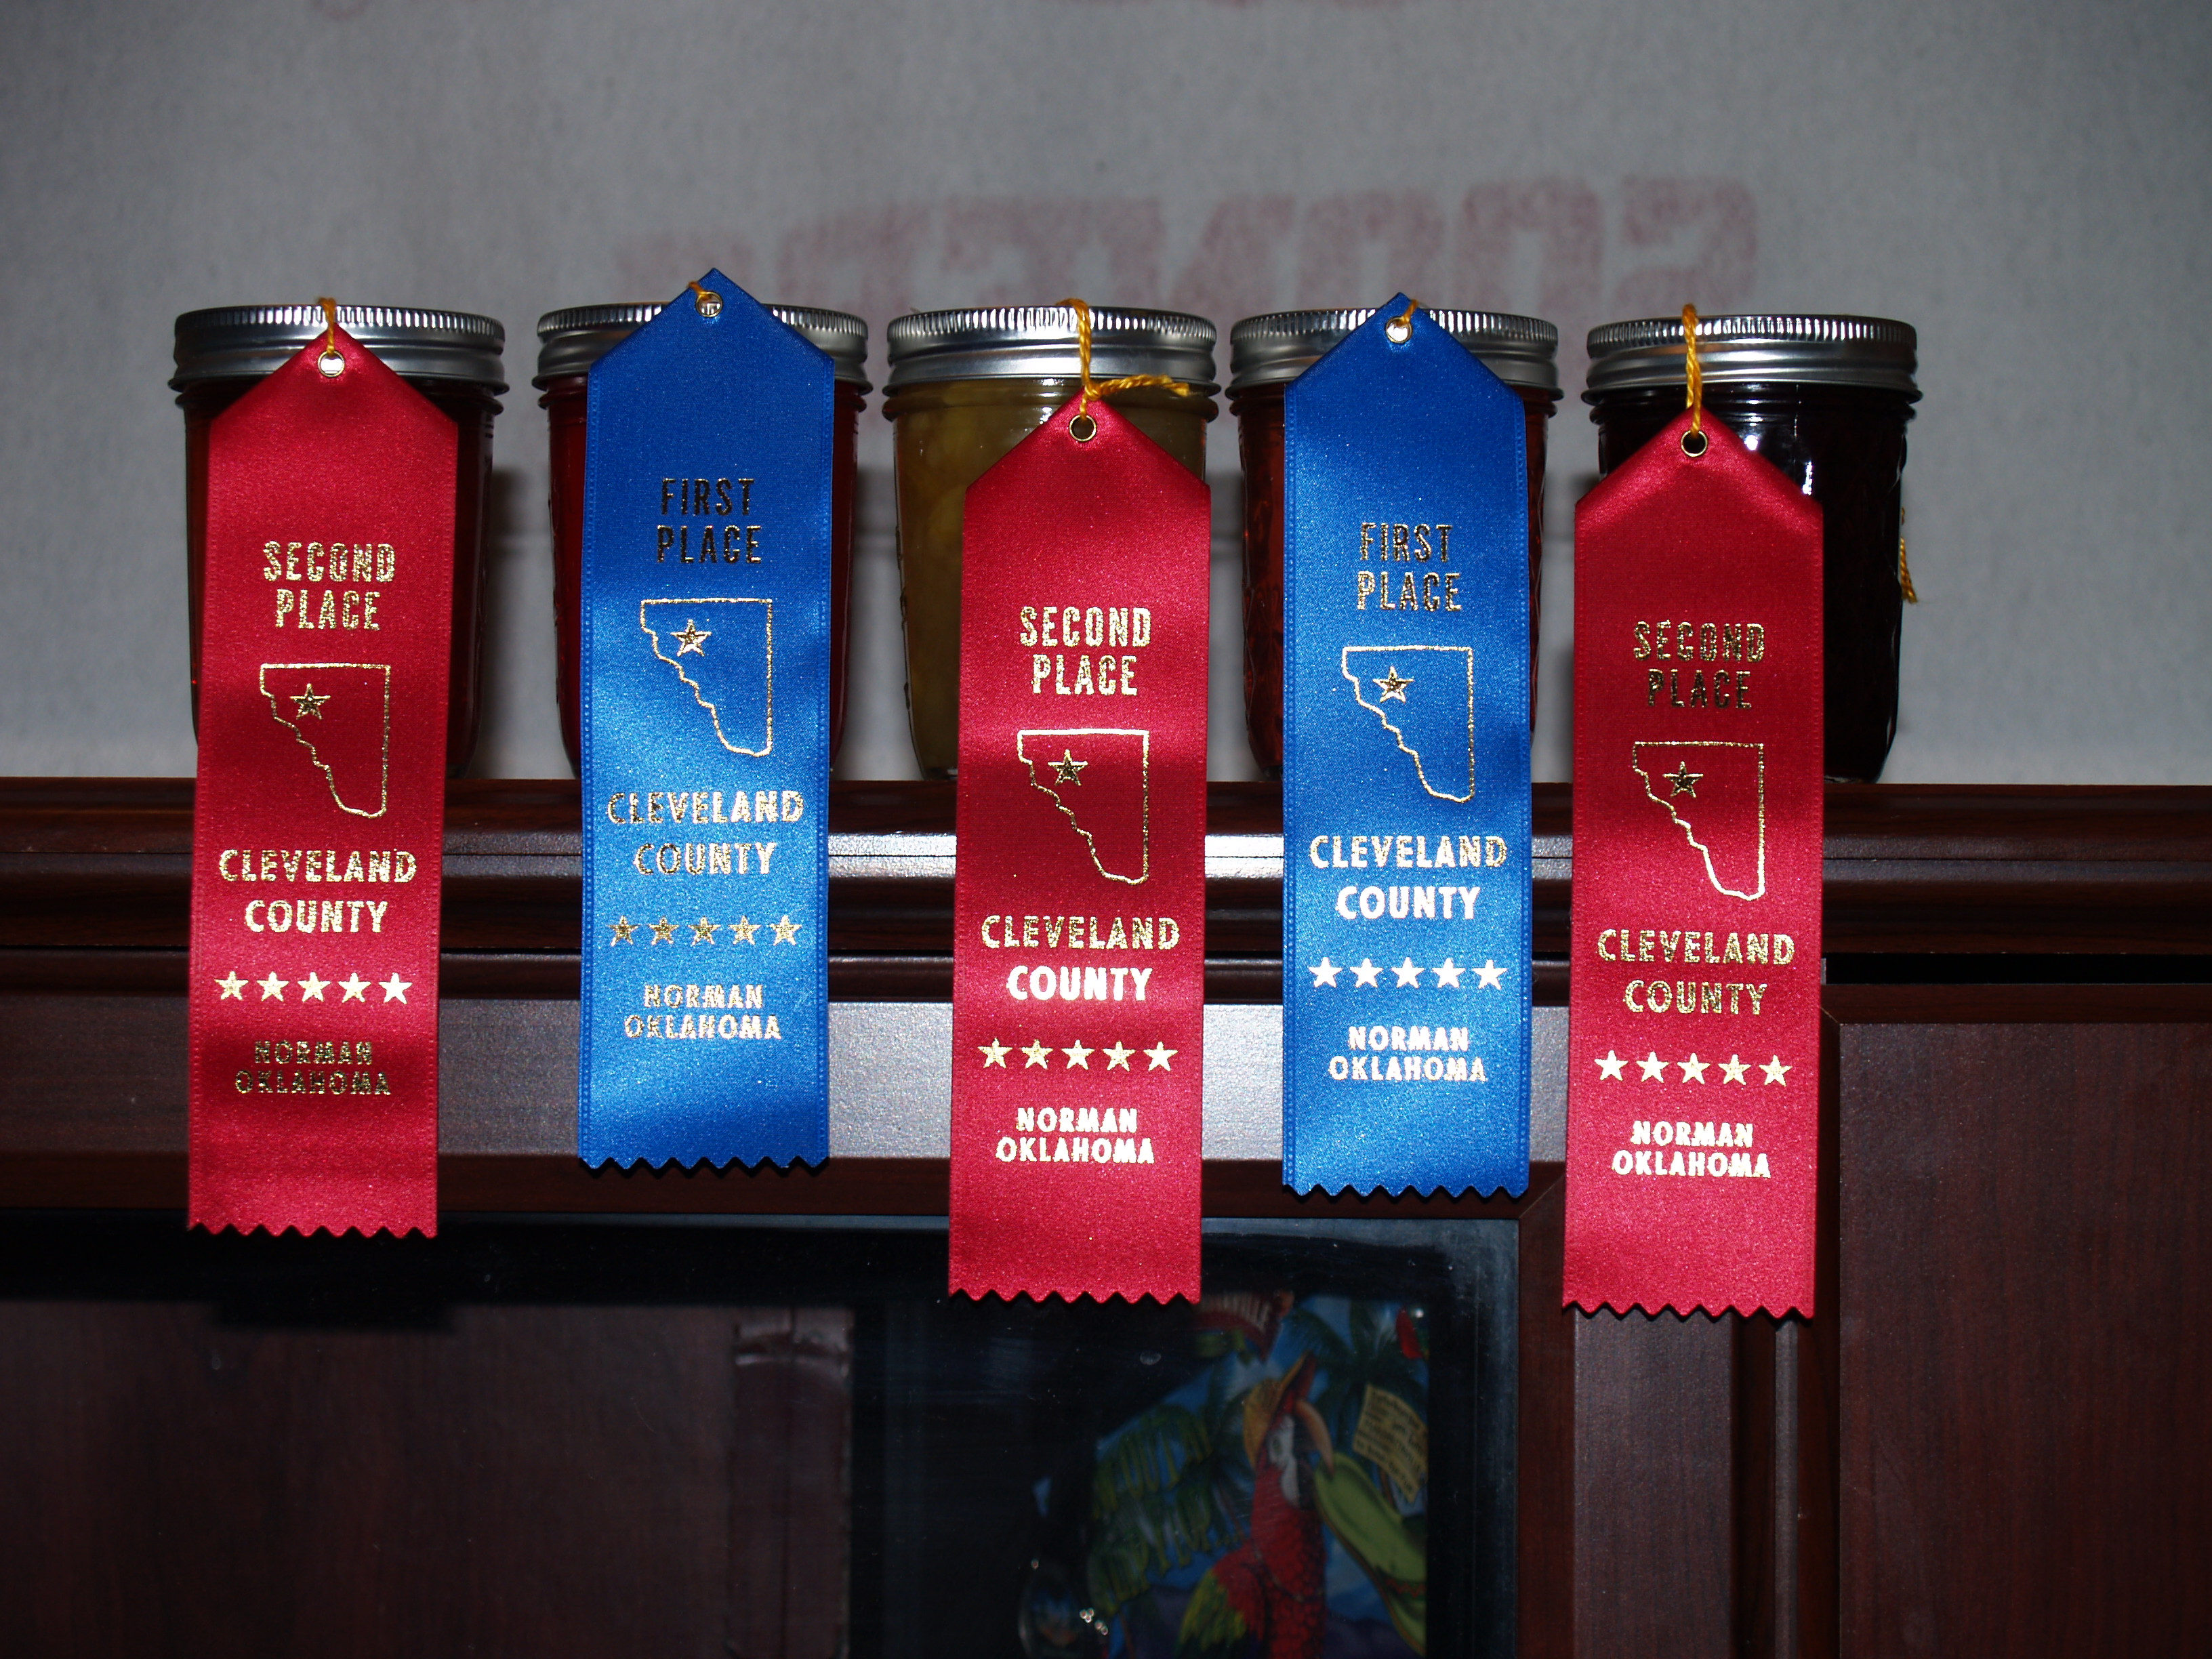 I entered twelve jars of different kinds of jelly/jam and I came home with eleven ribbons, one of them a blue first place ribbon!